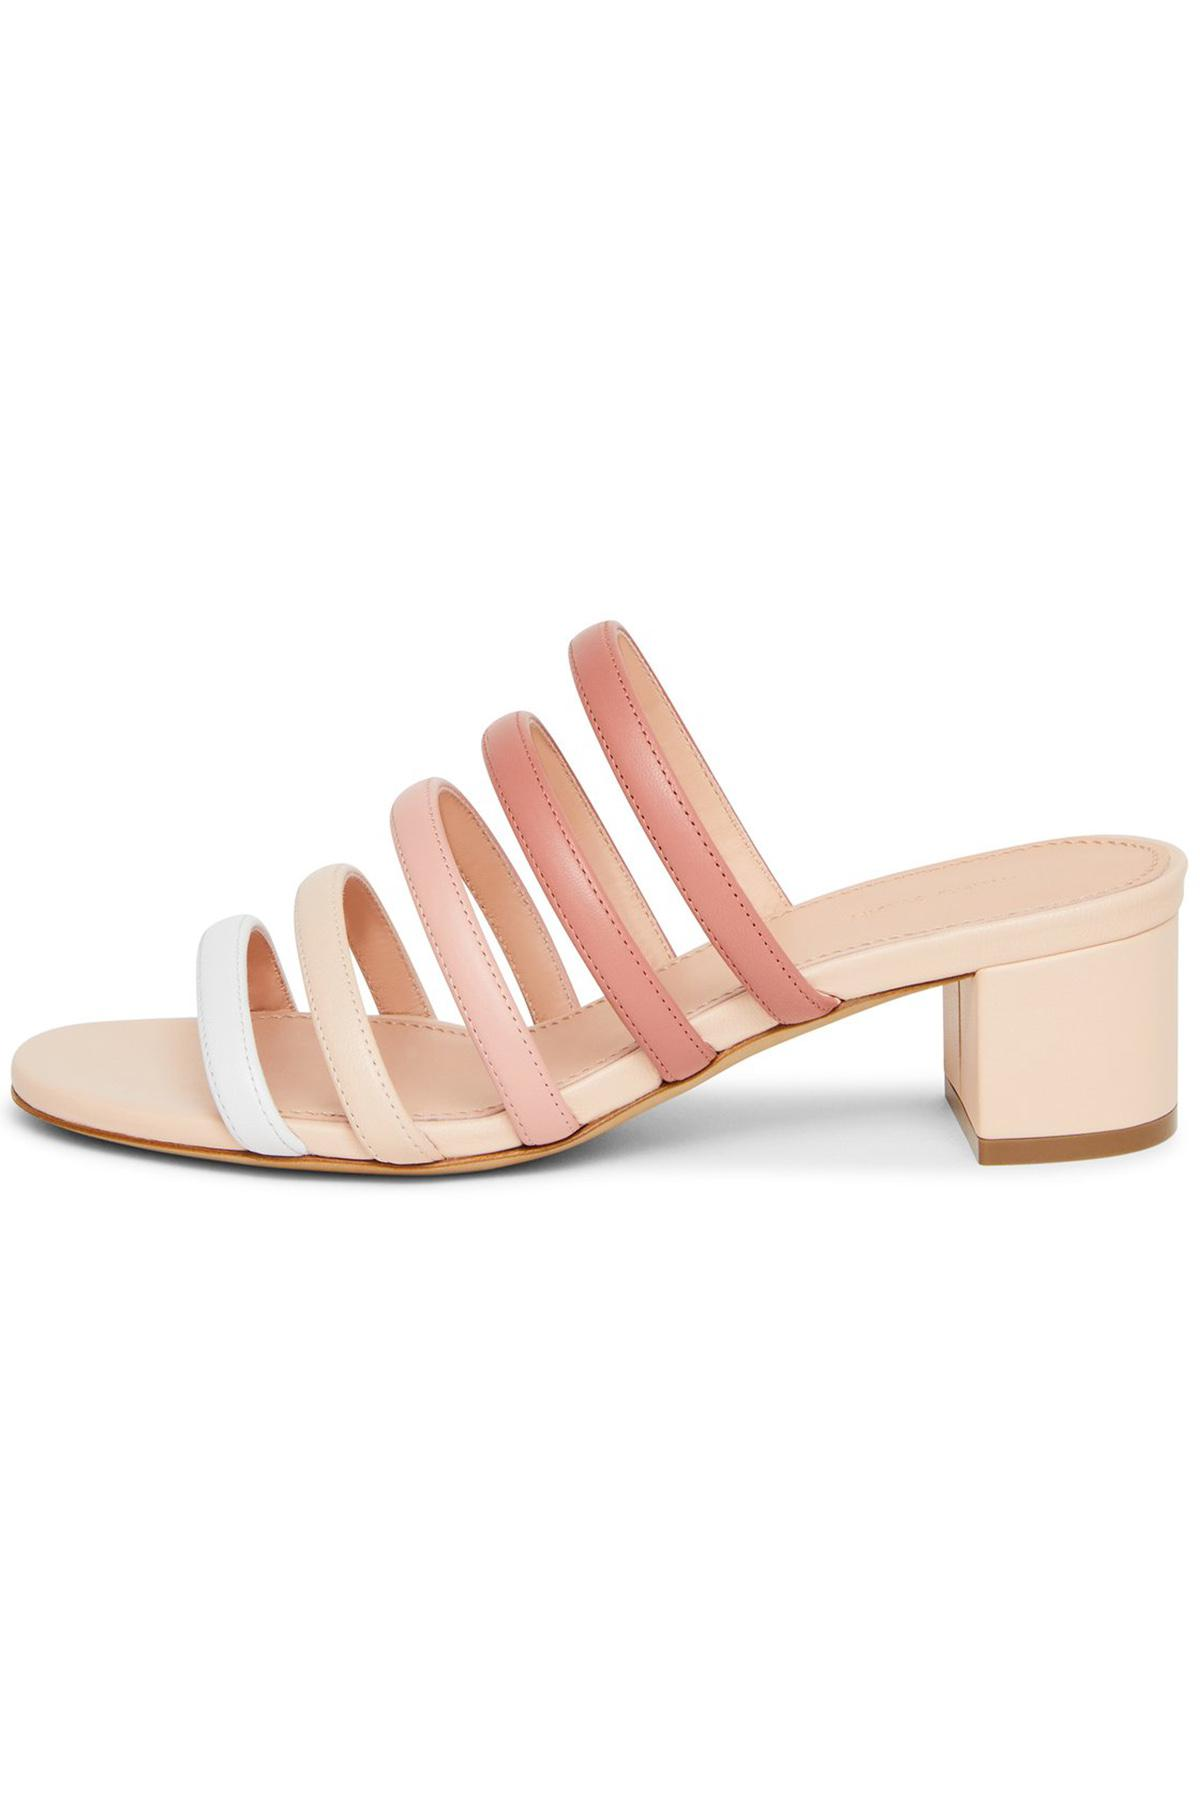 Yellow Multi Strap Sandals Mansur Gavriel Free Shipping Order cPnGBywR